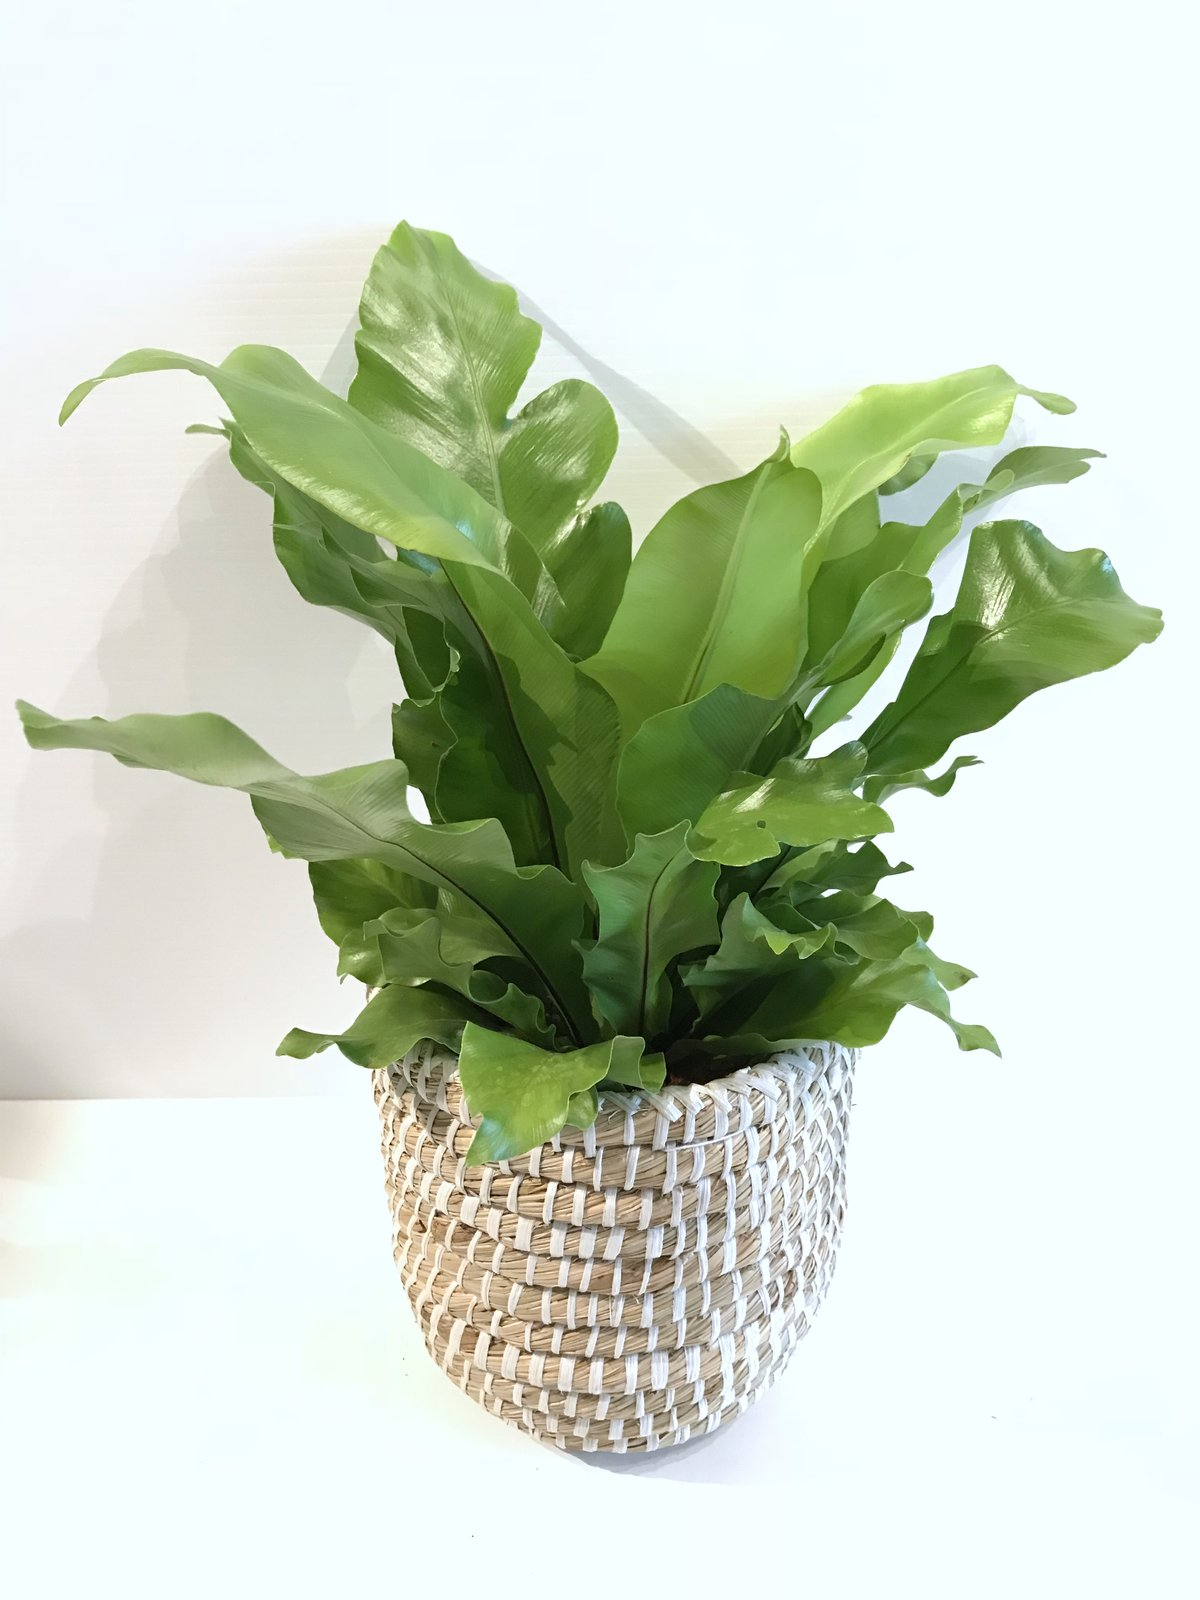 Birds' Nest Fern